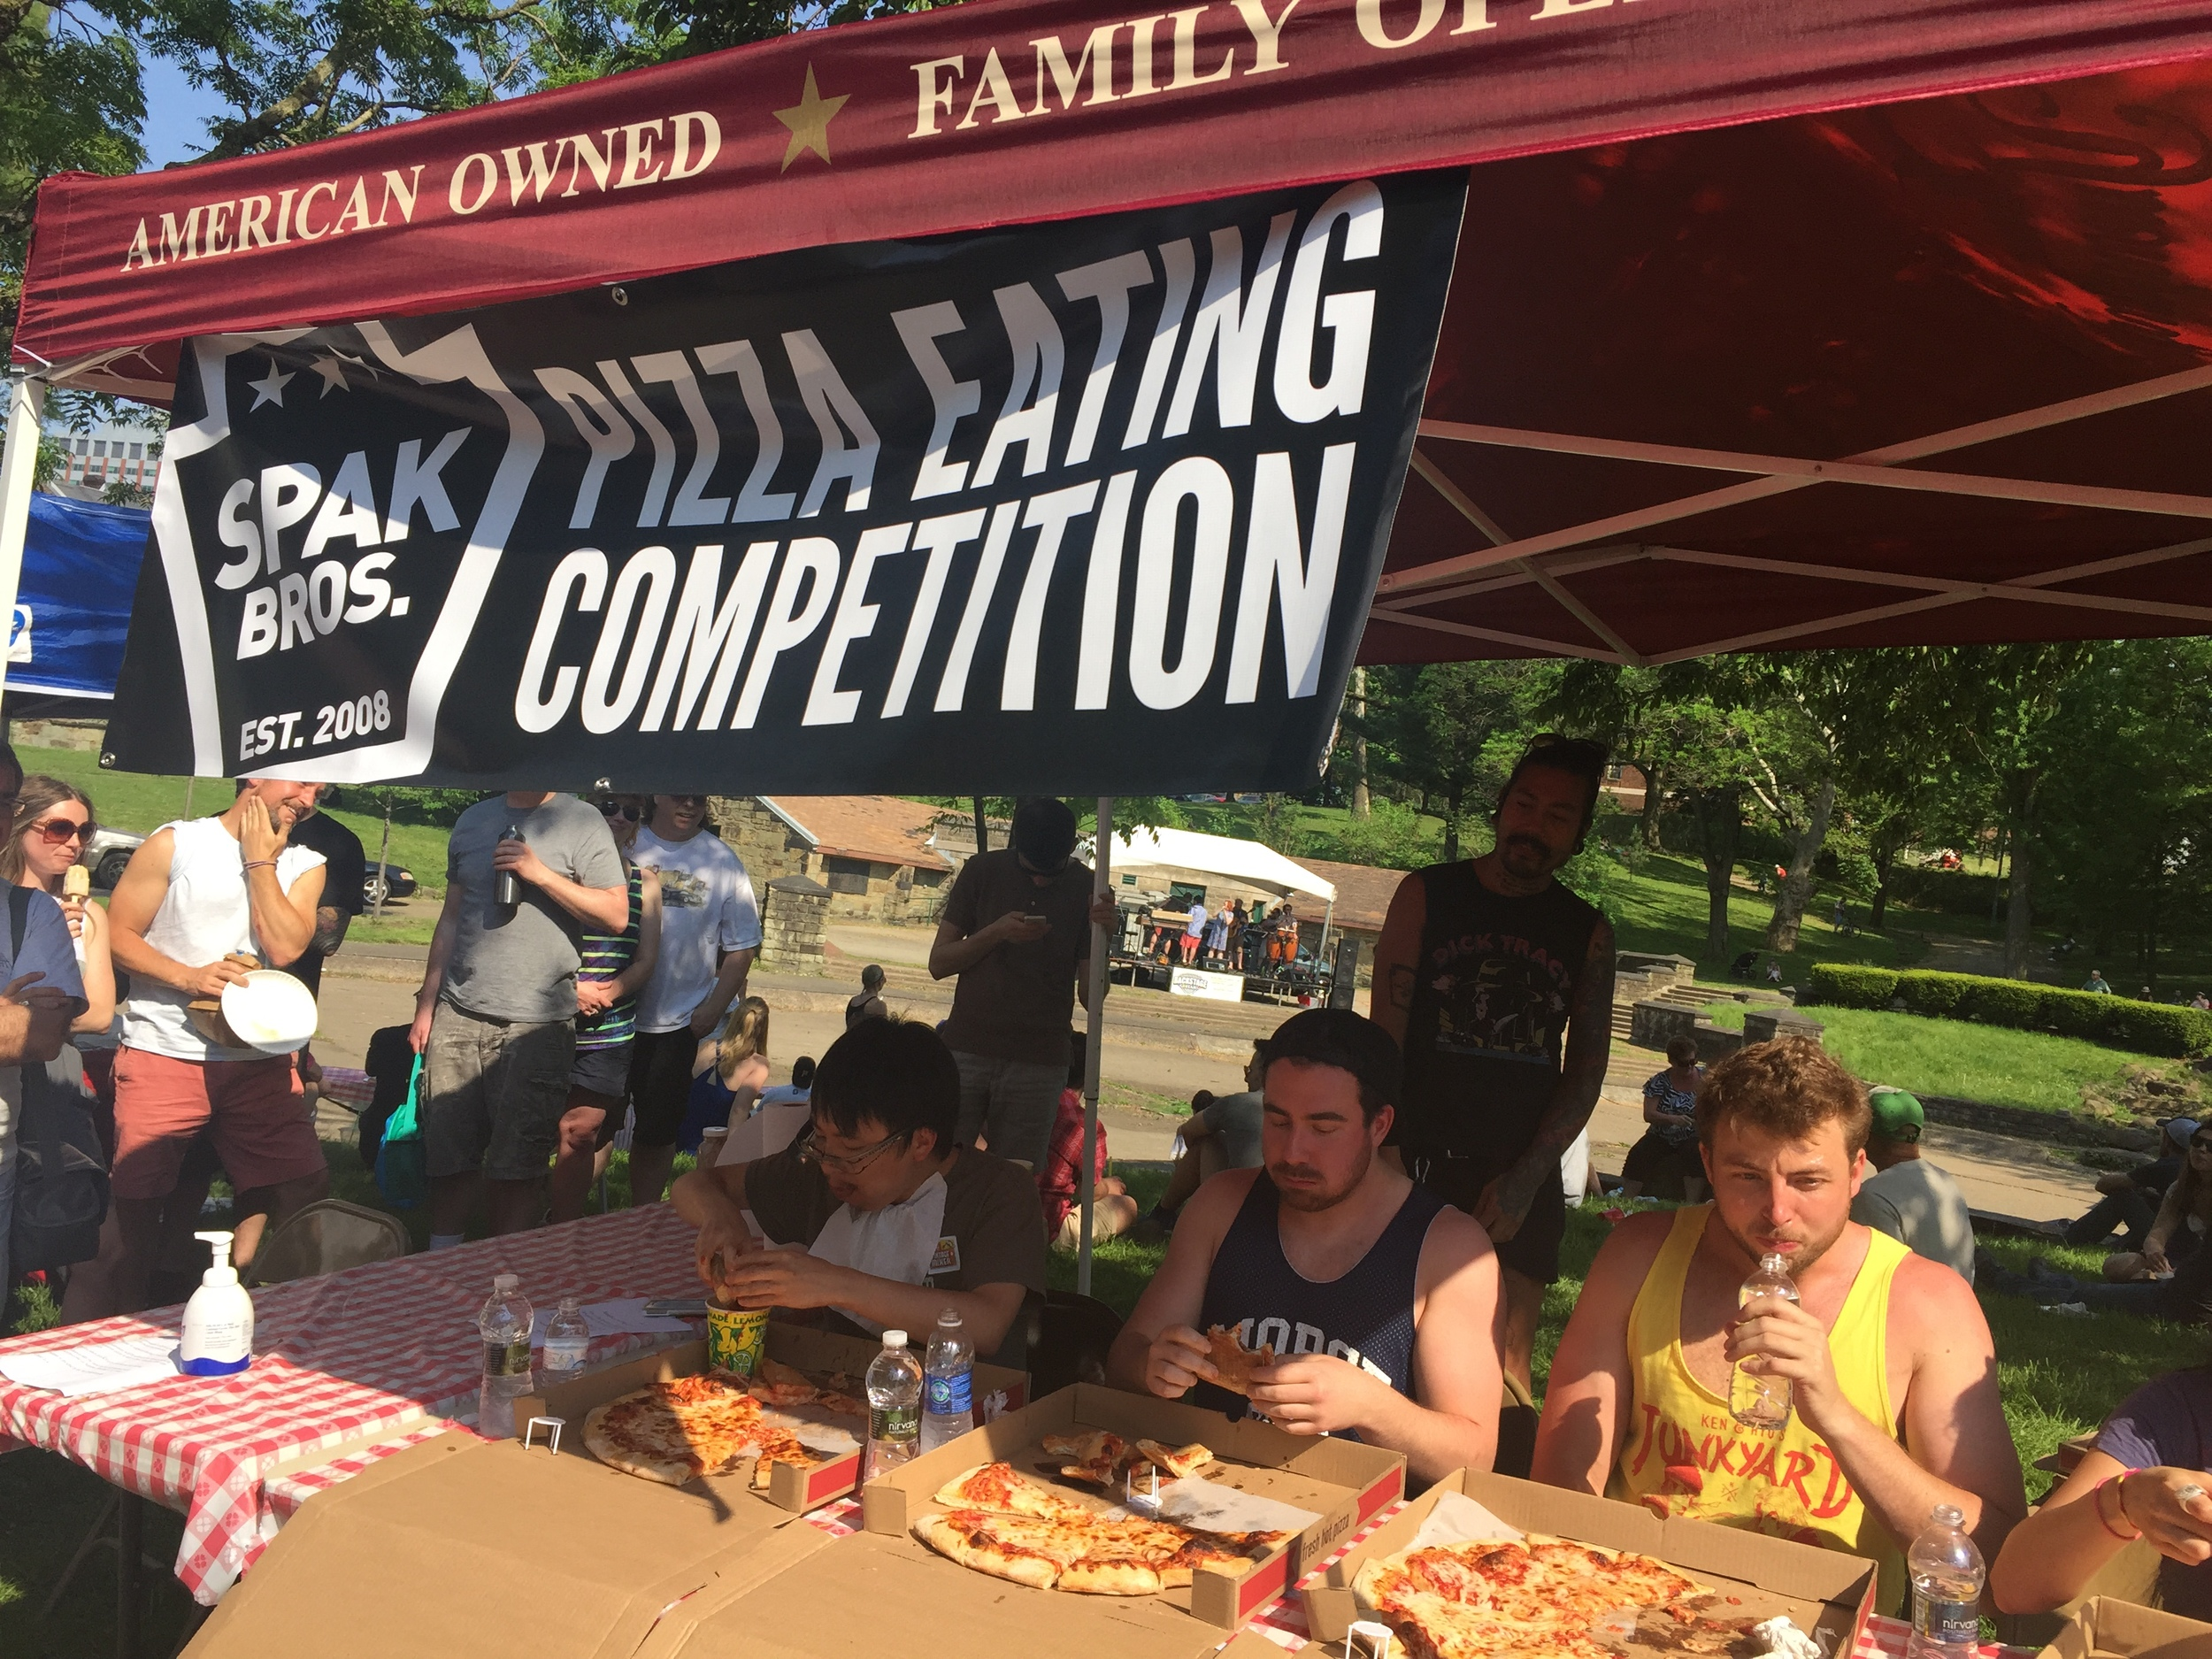 Spak Brothers Pizza Eating Competition